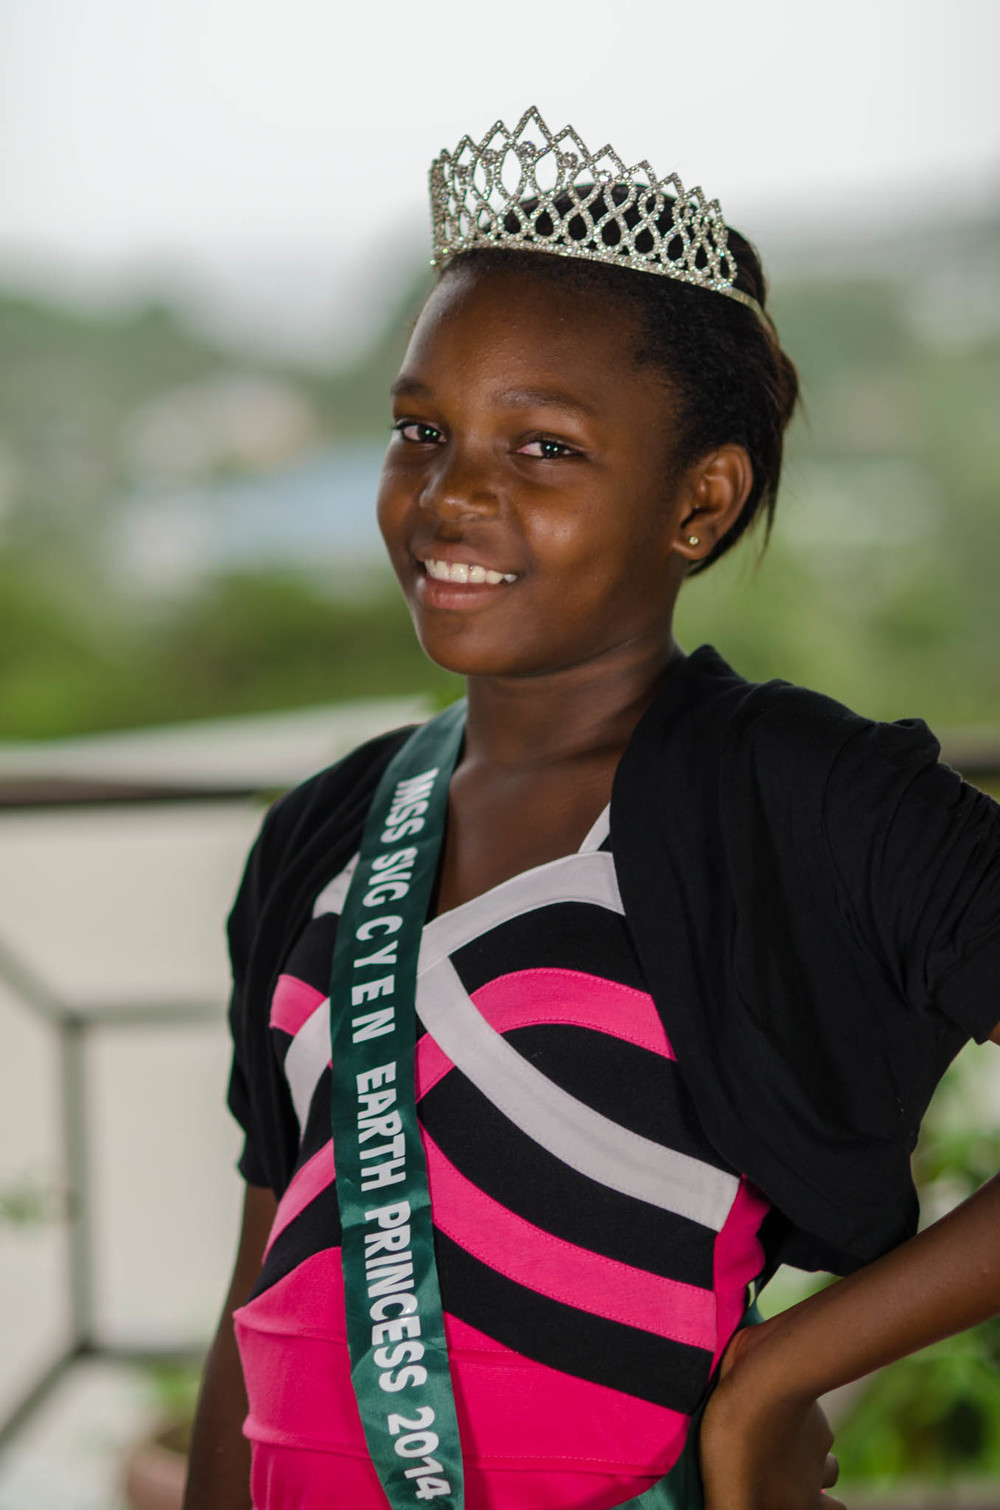 Princess Oricia, Miss SVG CYEN Earth Princess 2014